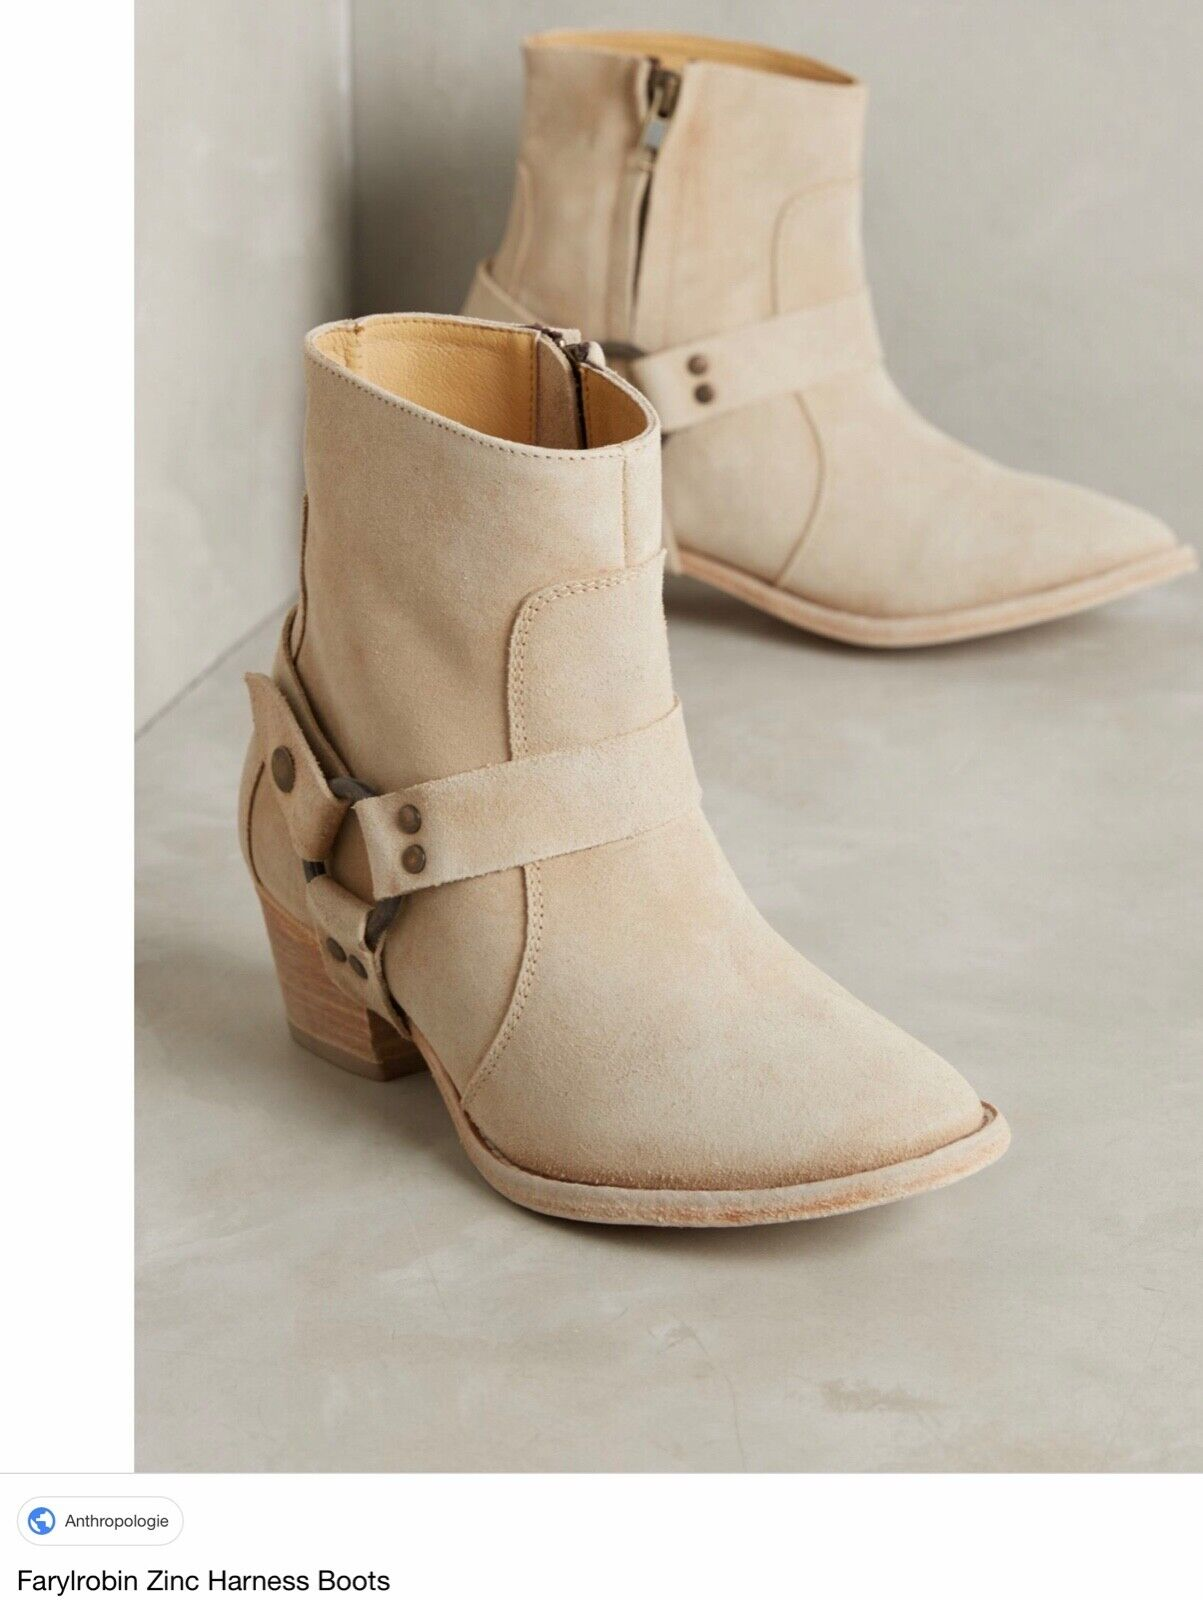 NEW NEW NEW Anthropologie Zinc Harness Boots Size 6.5 6da7e4